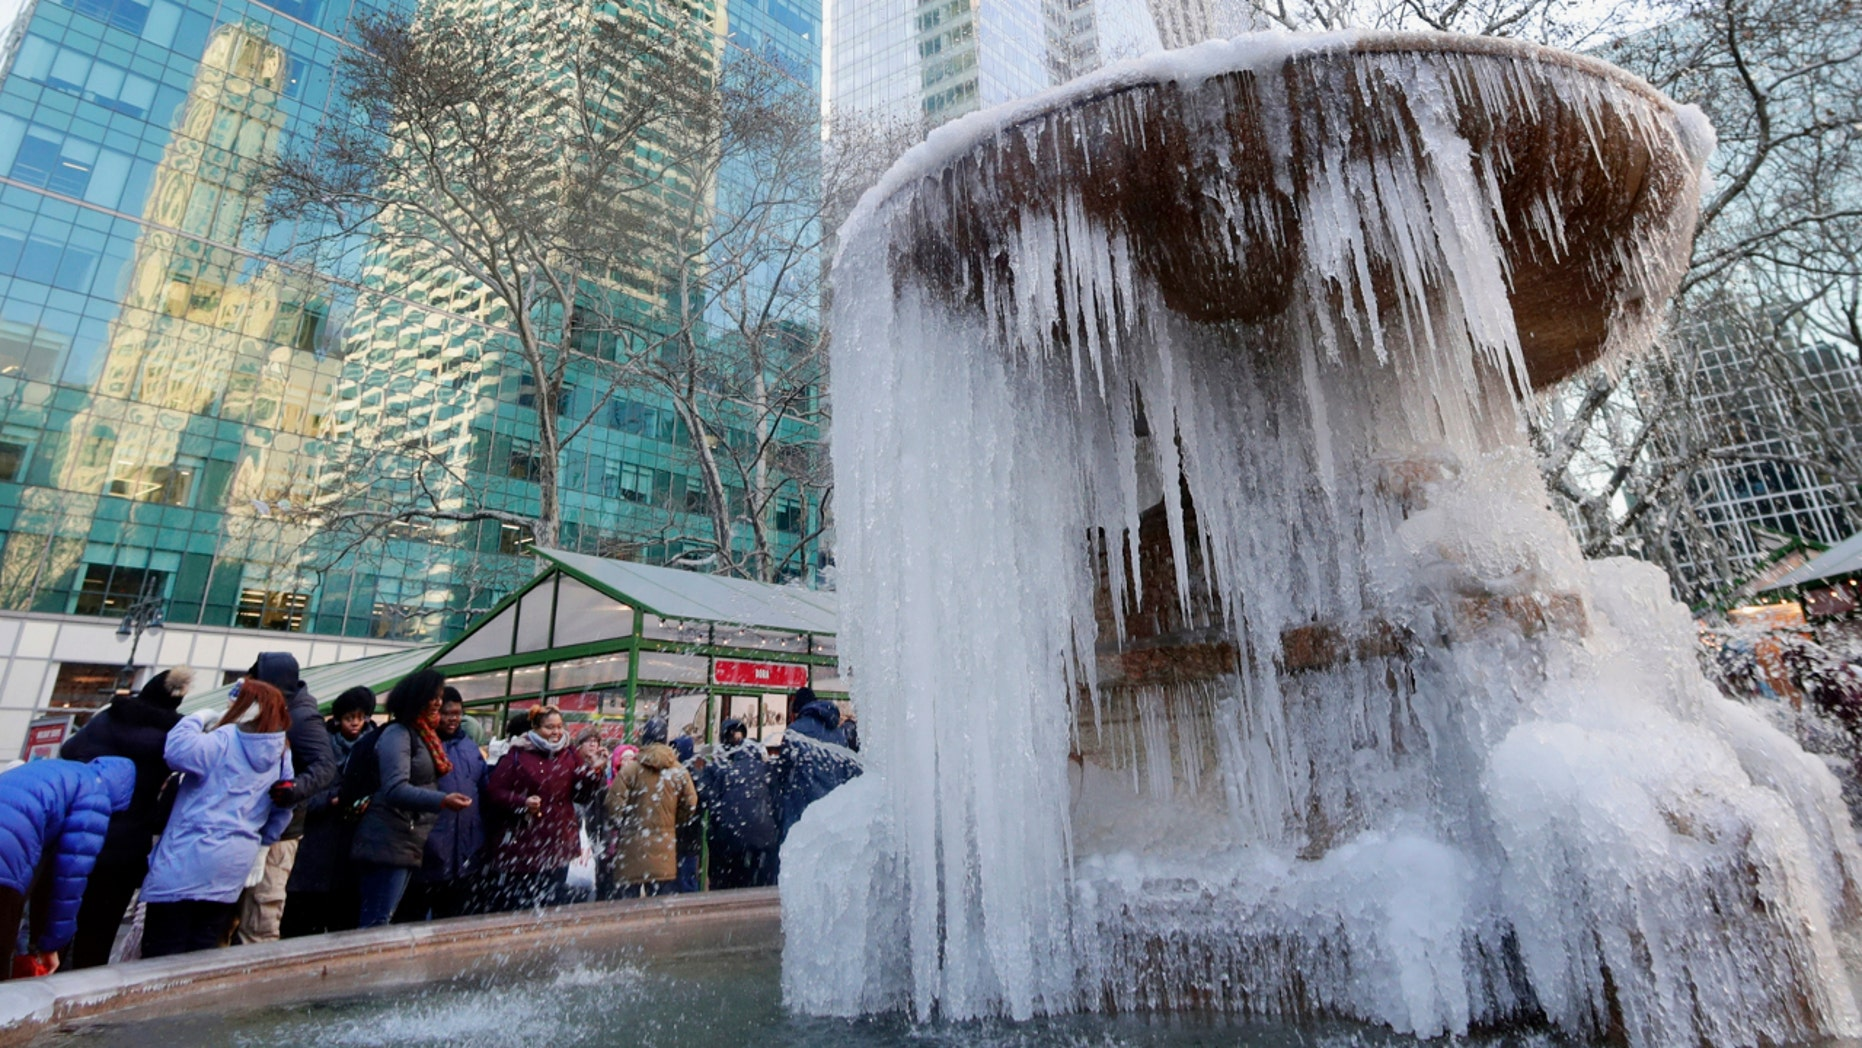 People pose for photos near a frozen water fountain in New York City's Bryant Park, Dec. 28, 2017.